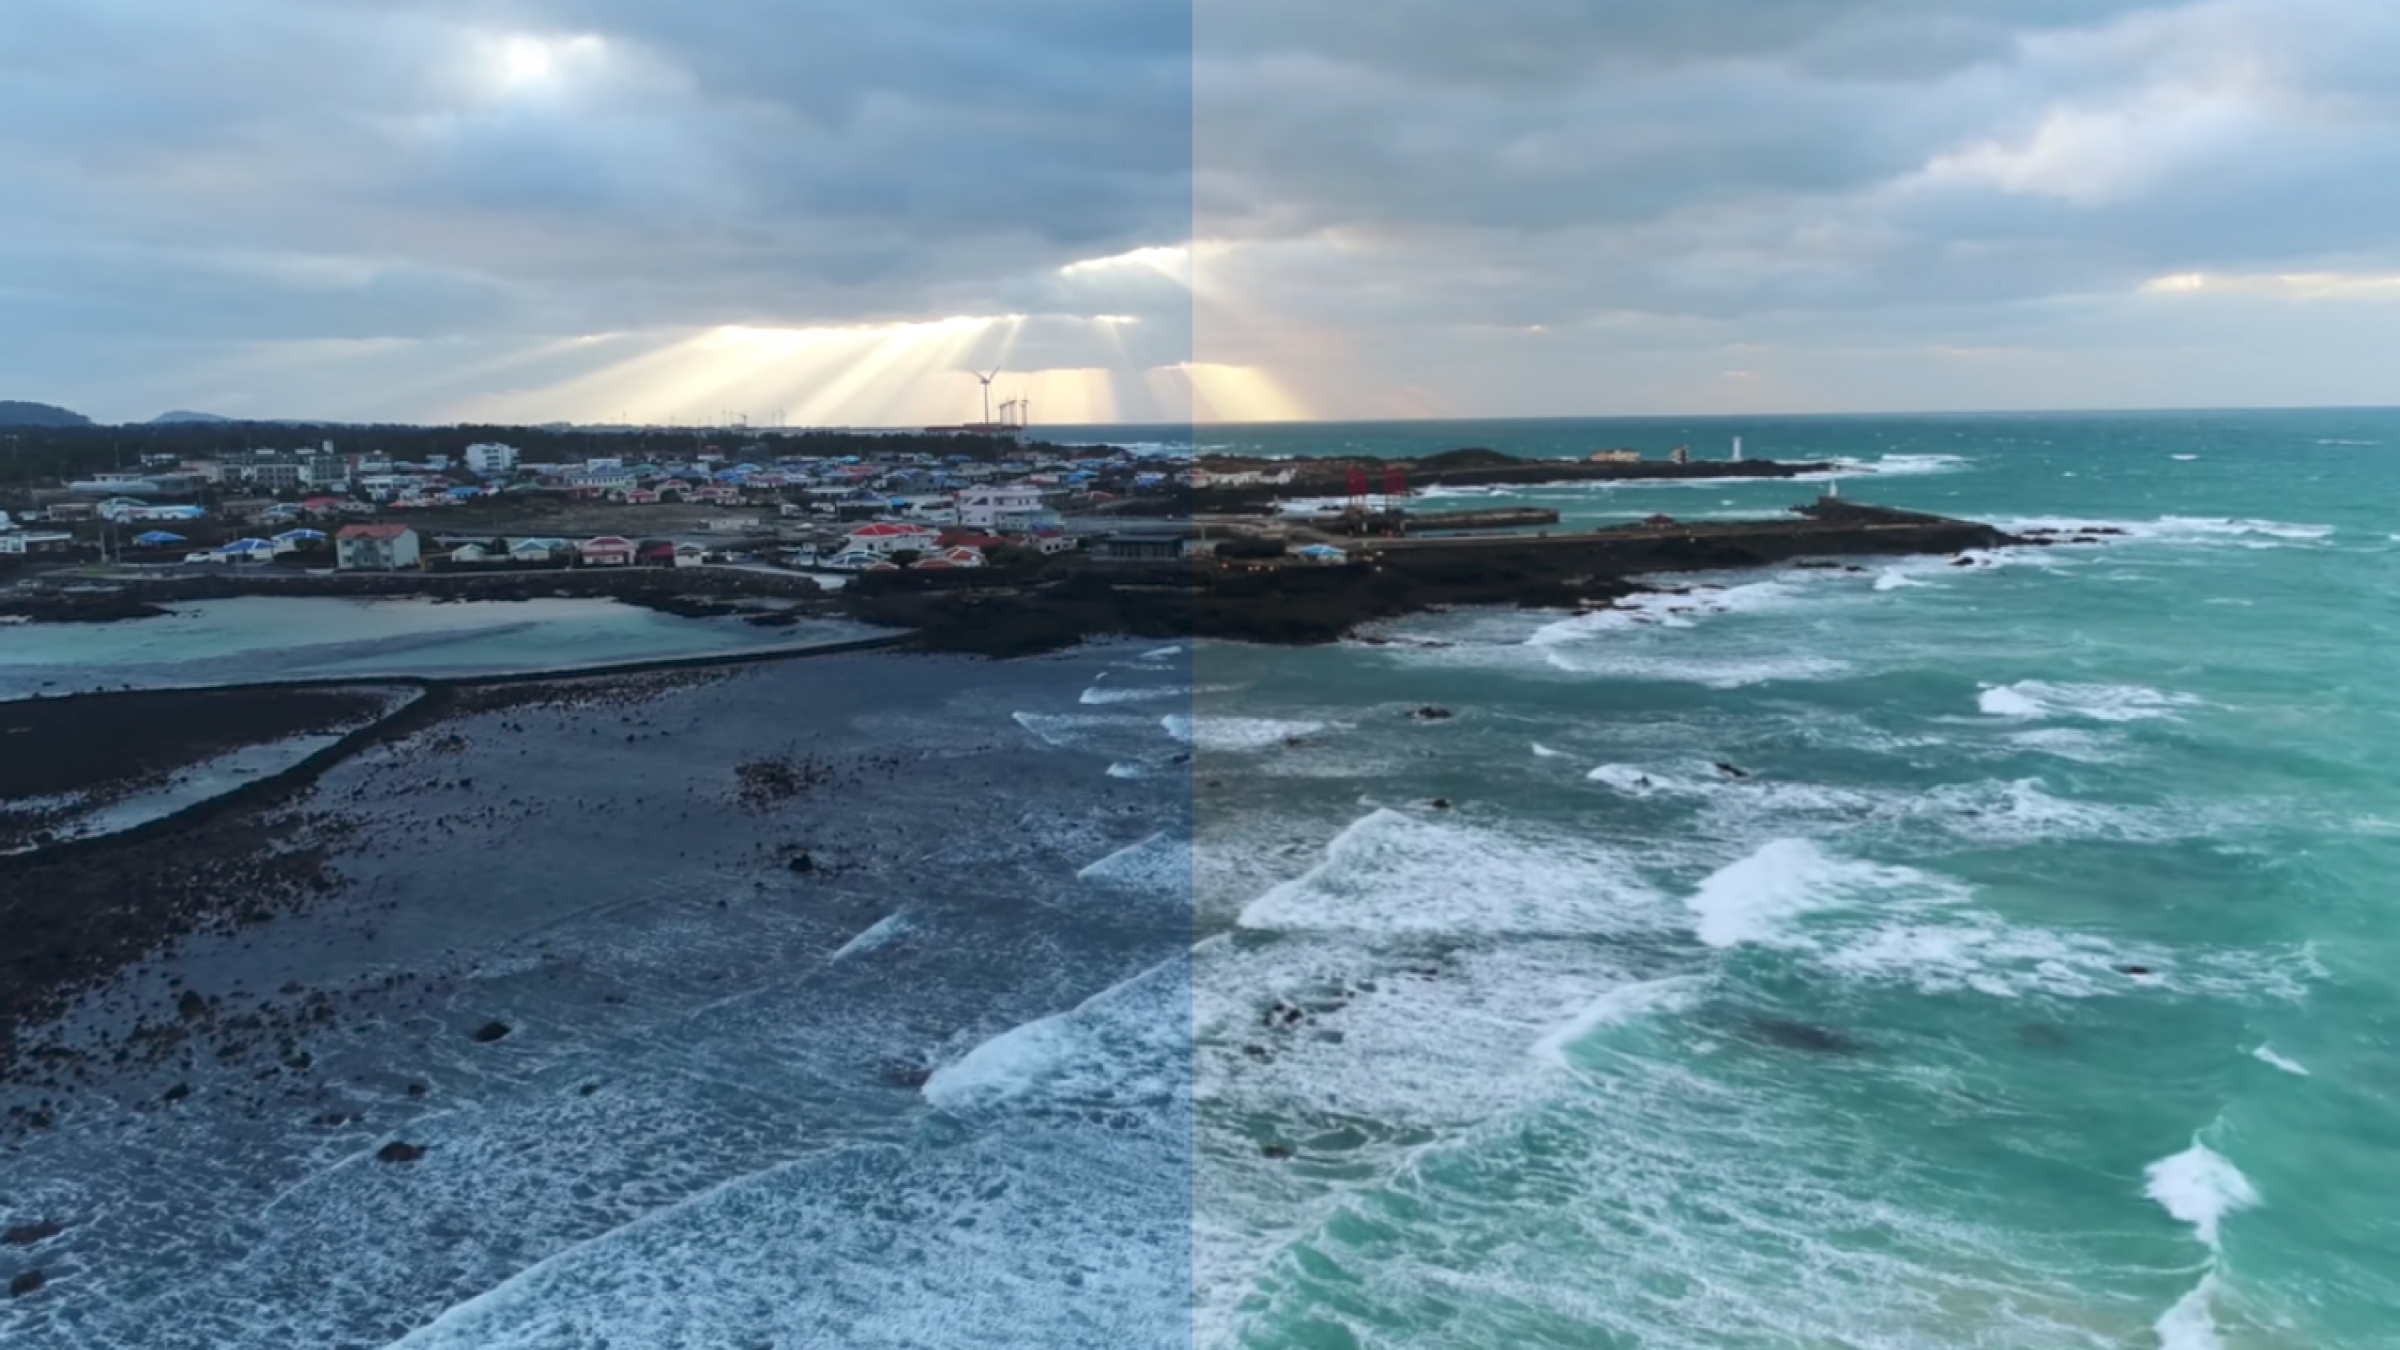 EPICOLOR Uses Artificial Intelligence to Grade Your Footage Automatically